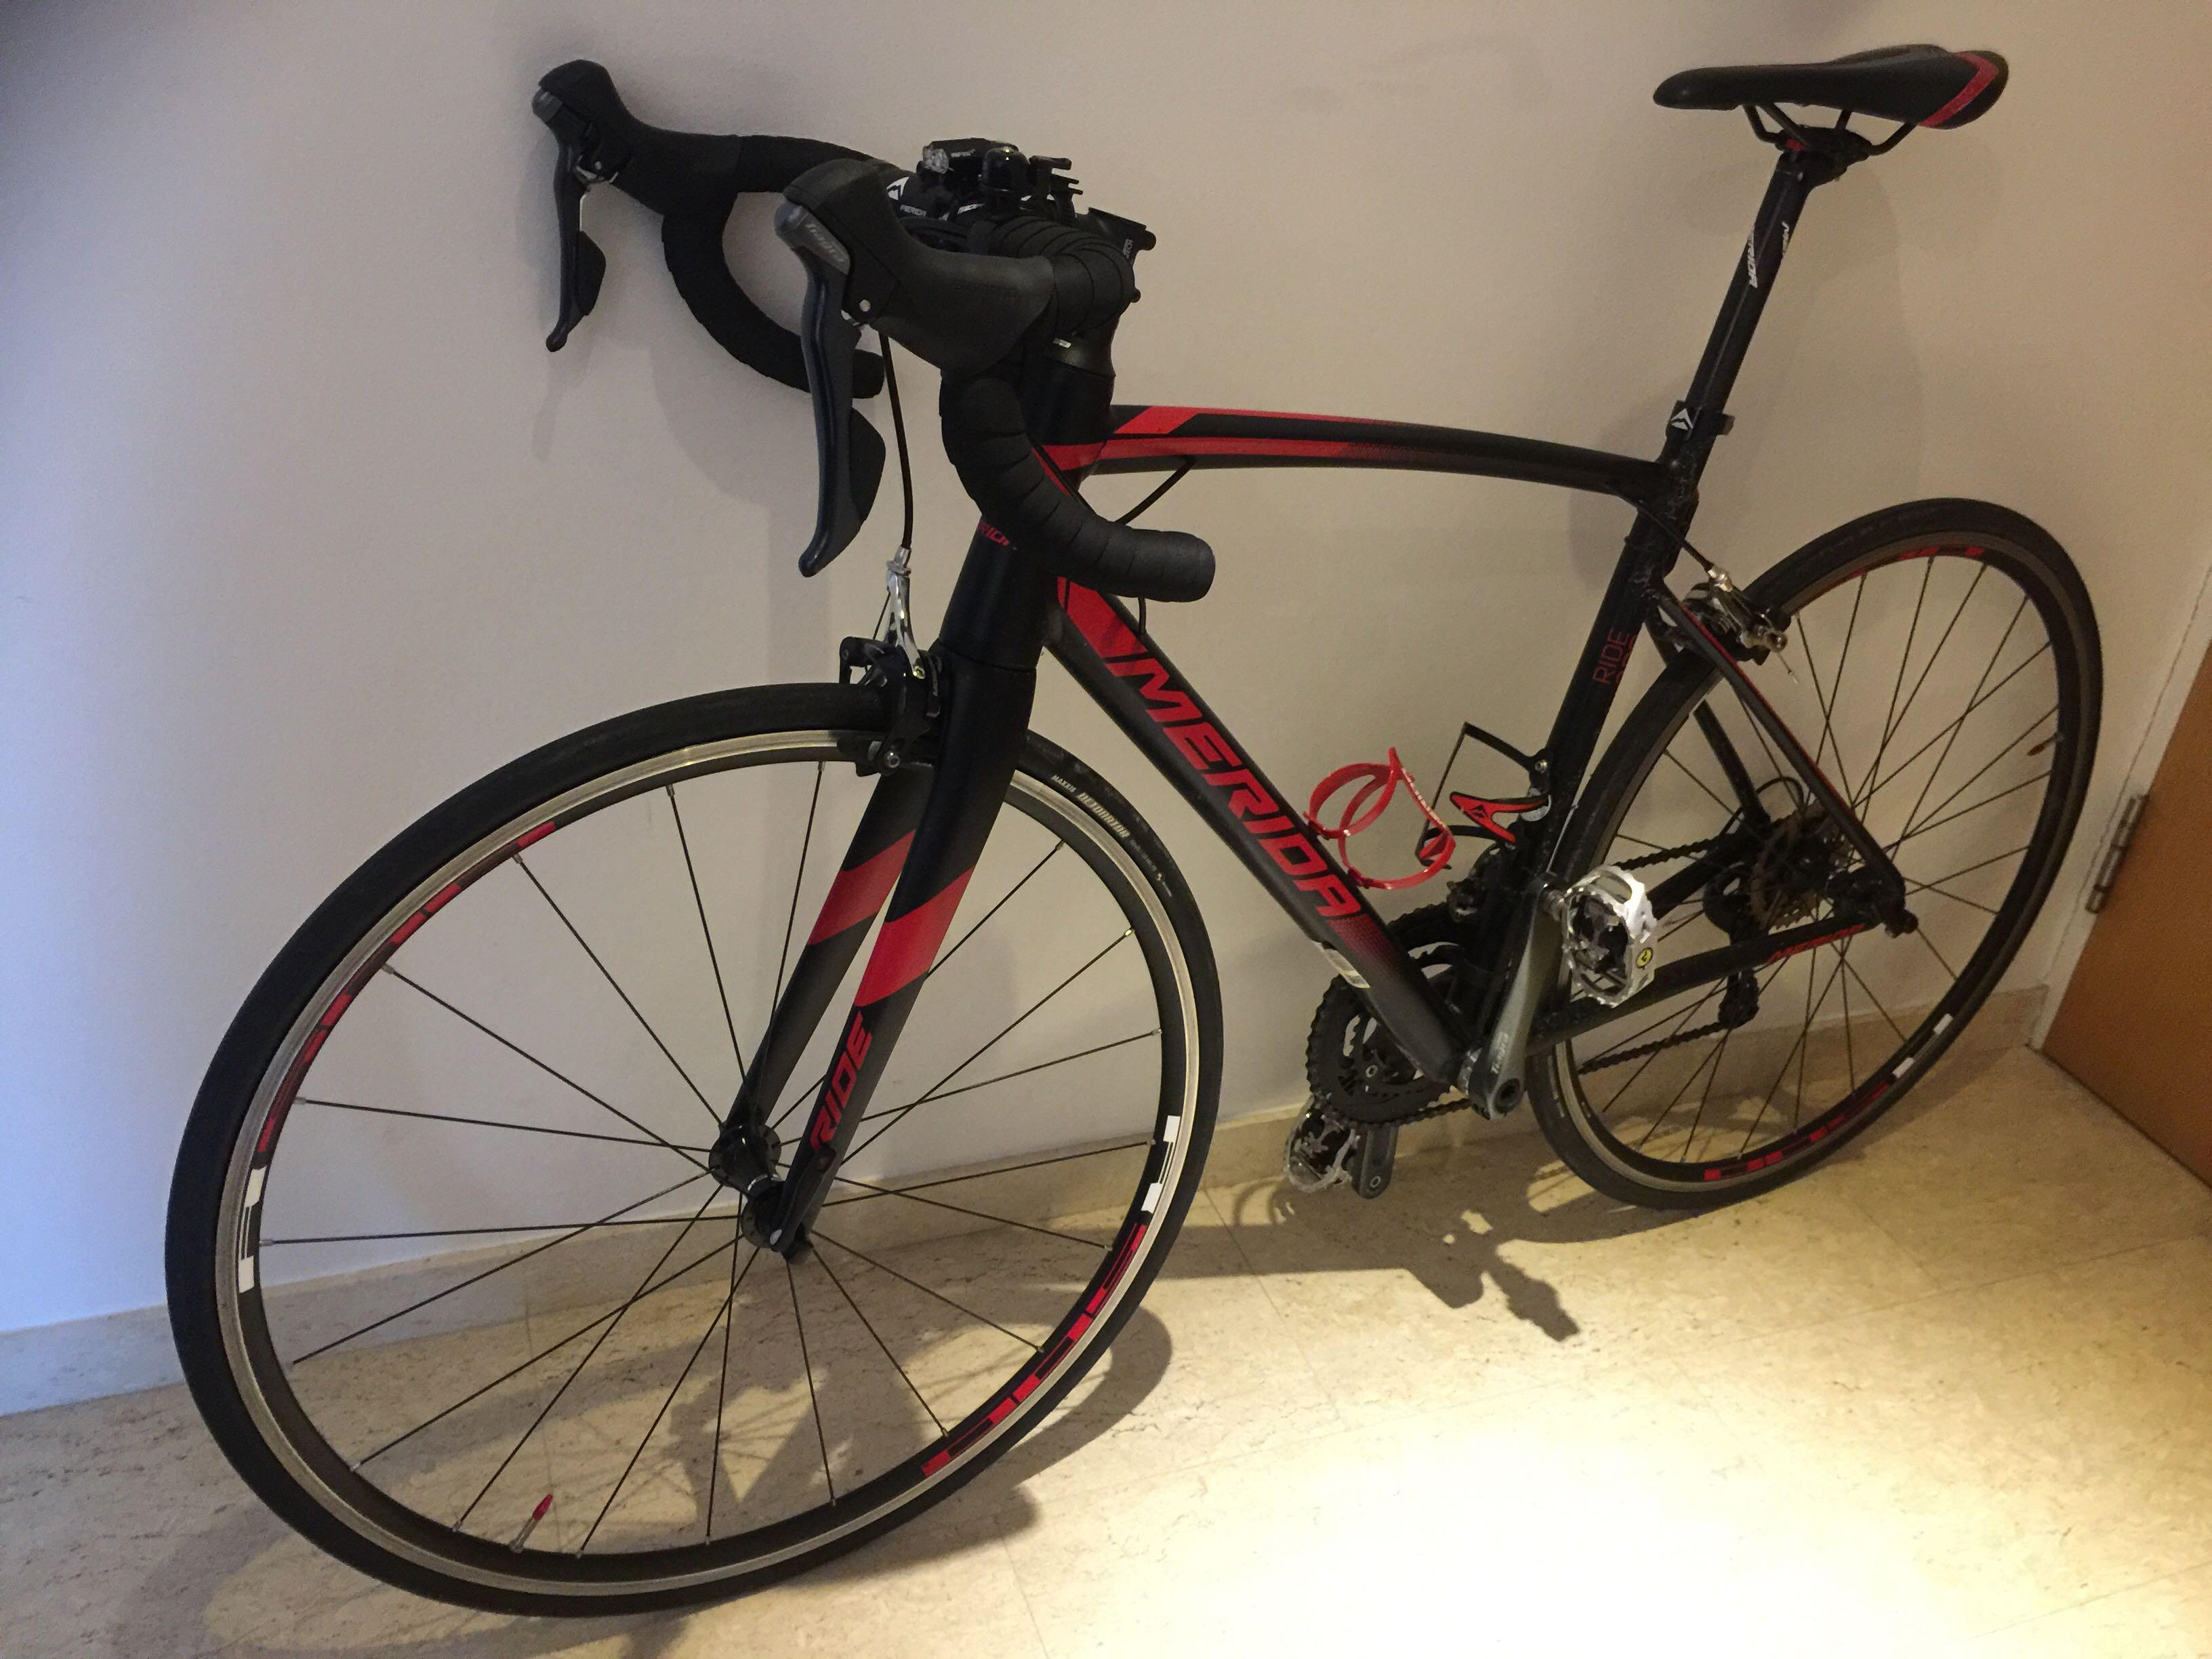 Merida Ride 300- almost new, Bicycles & PMDs, Bicycles, Road